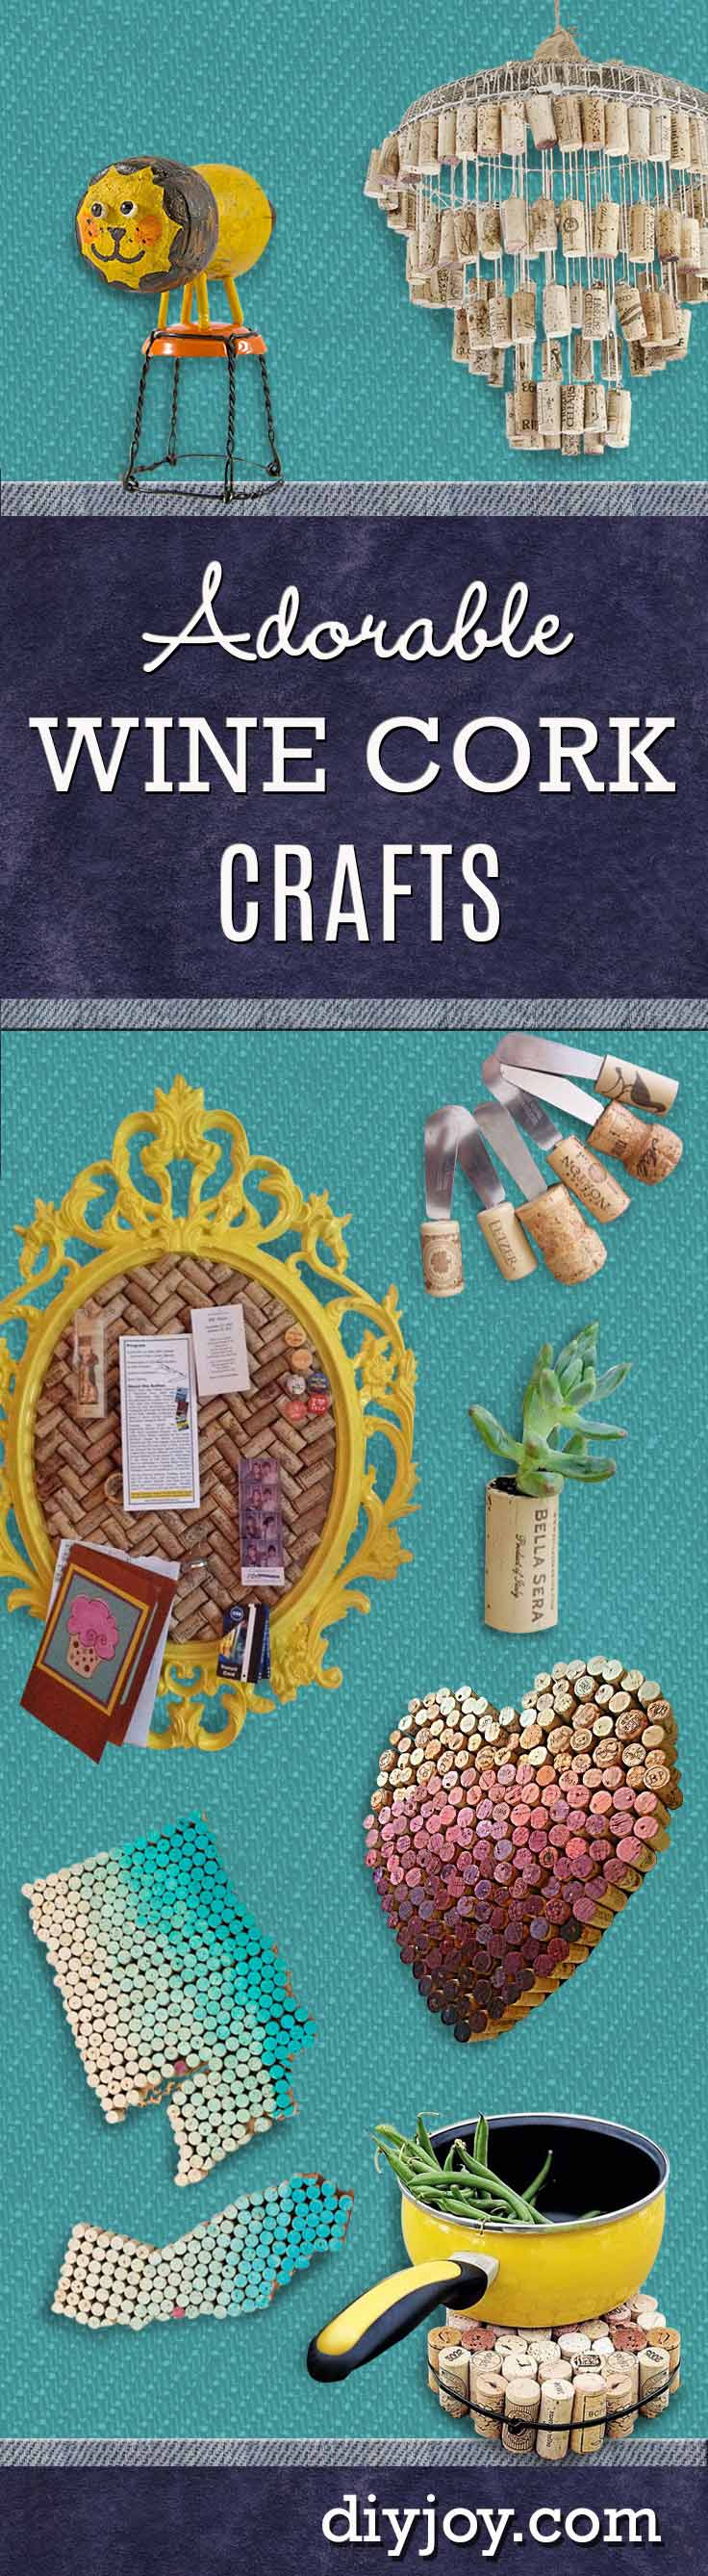 DIY Wine Cork Crafts | Cool DIY Projects and Crafts Ideas Made With Wine Corks